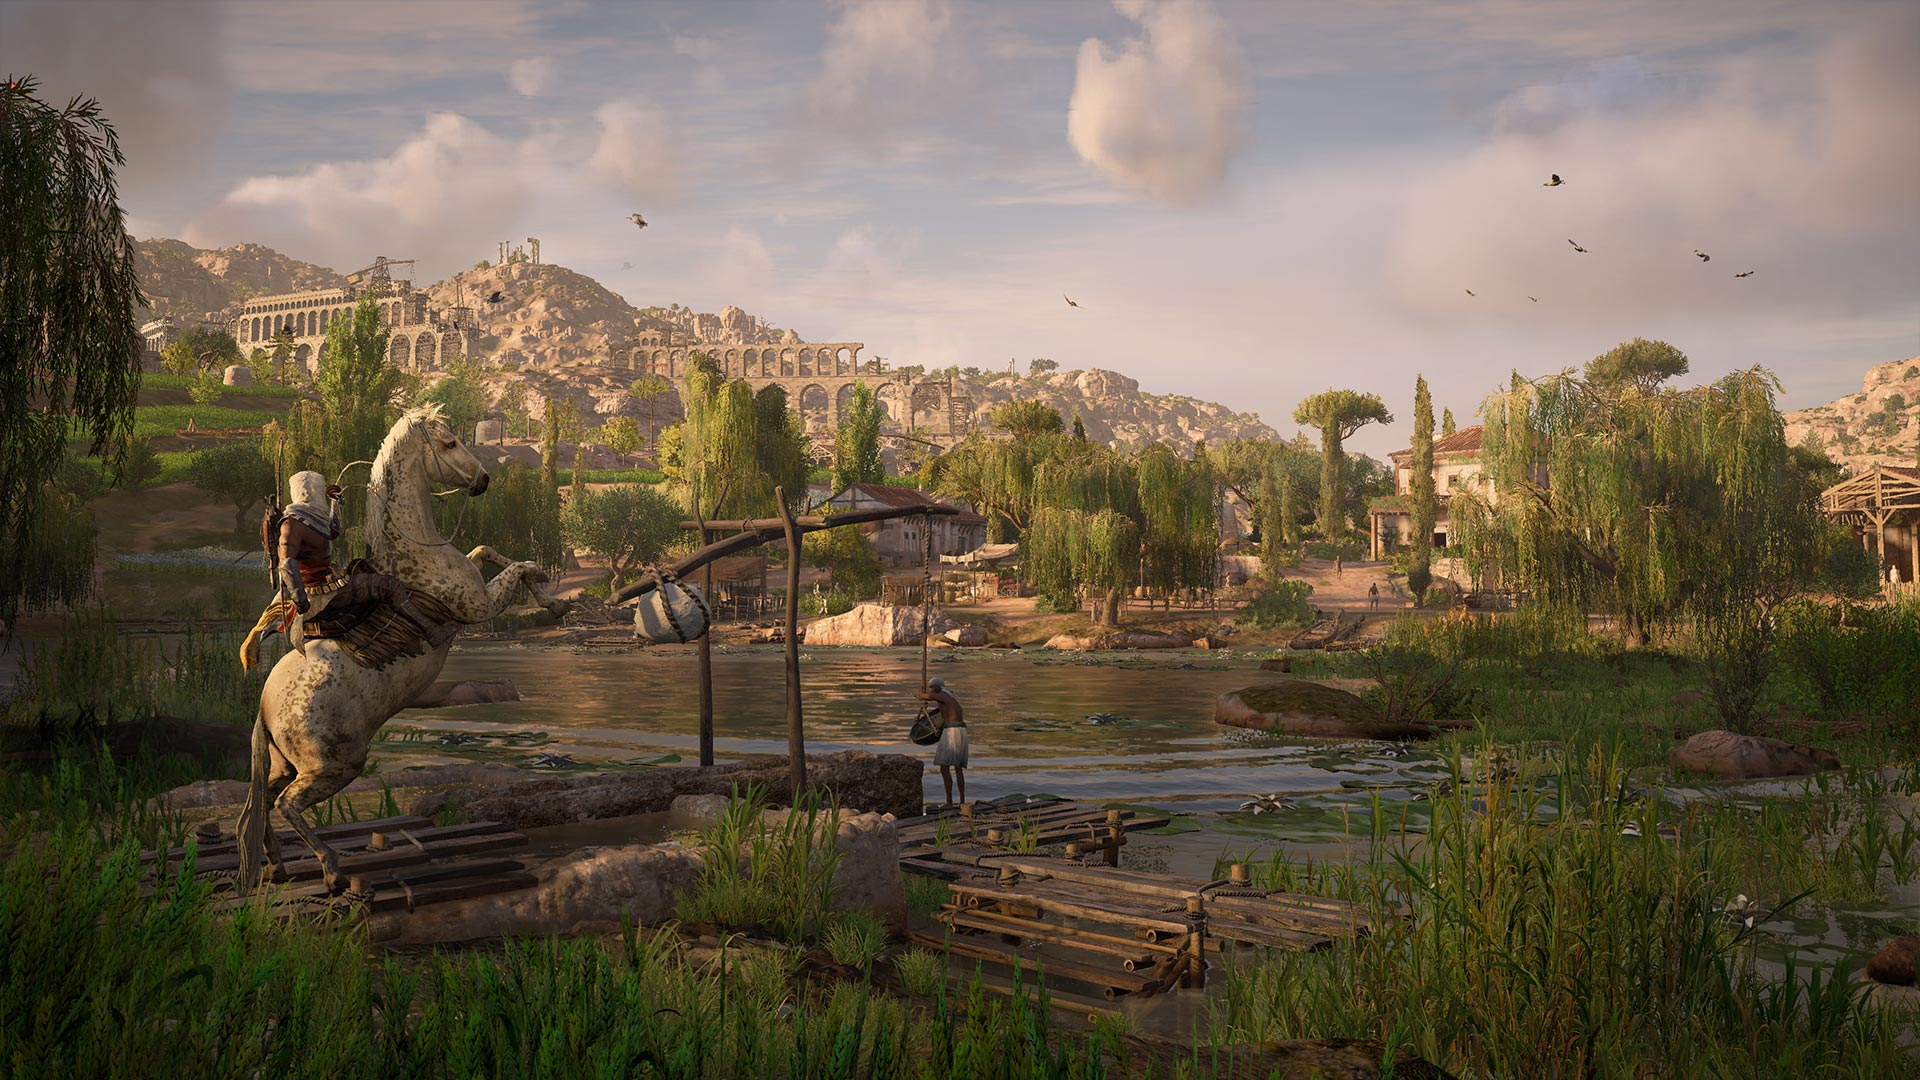 https://ubistatic19-a.akamaihd.net/resource/ja-jp/game/assassins-creed/ac-origins/ac_media_preview-cyrene-countryside_ncsa.jpg